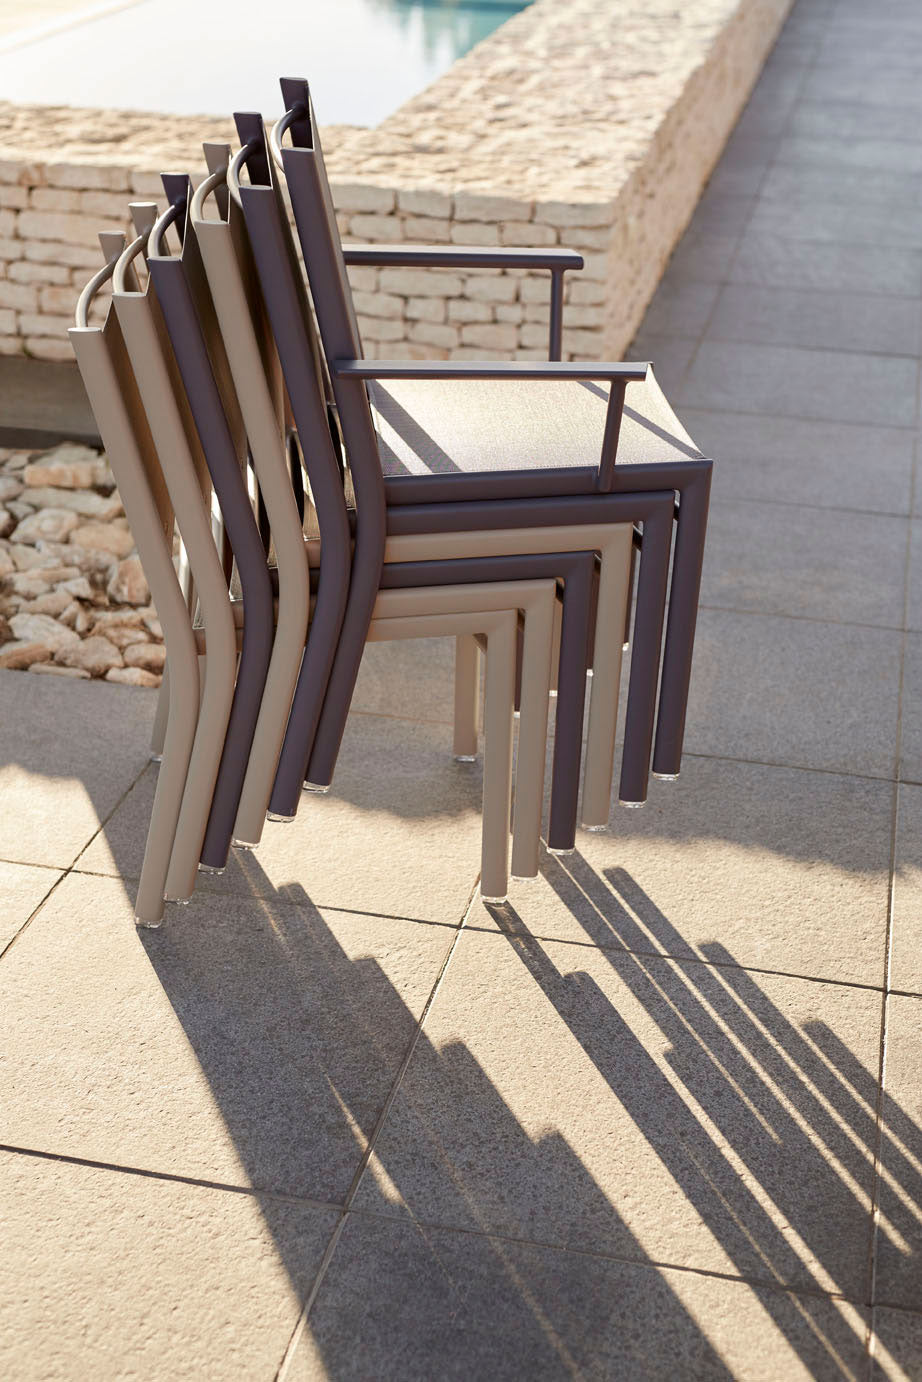 Fermob Costa Stacking Chairs in Nutmeg & Plum